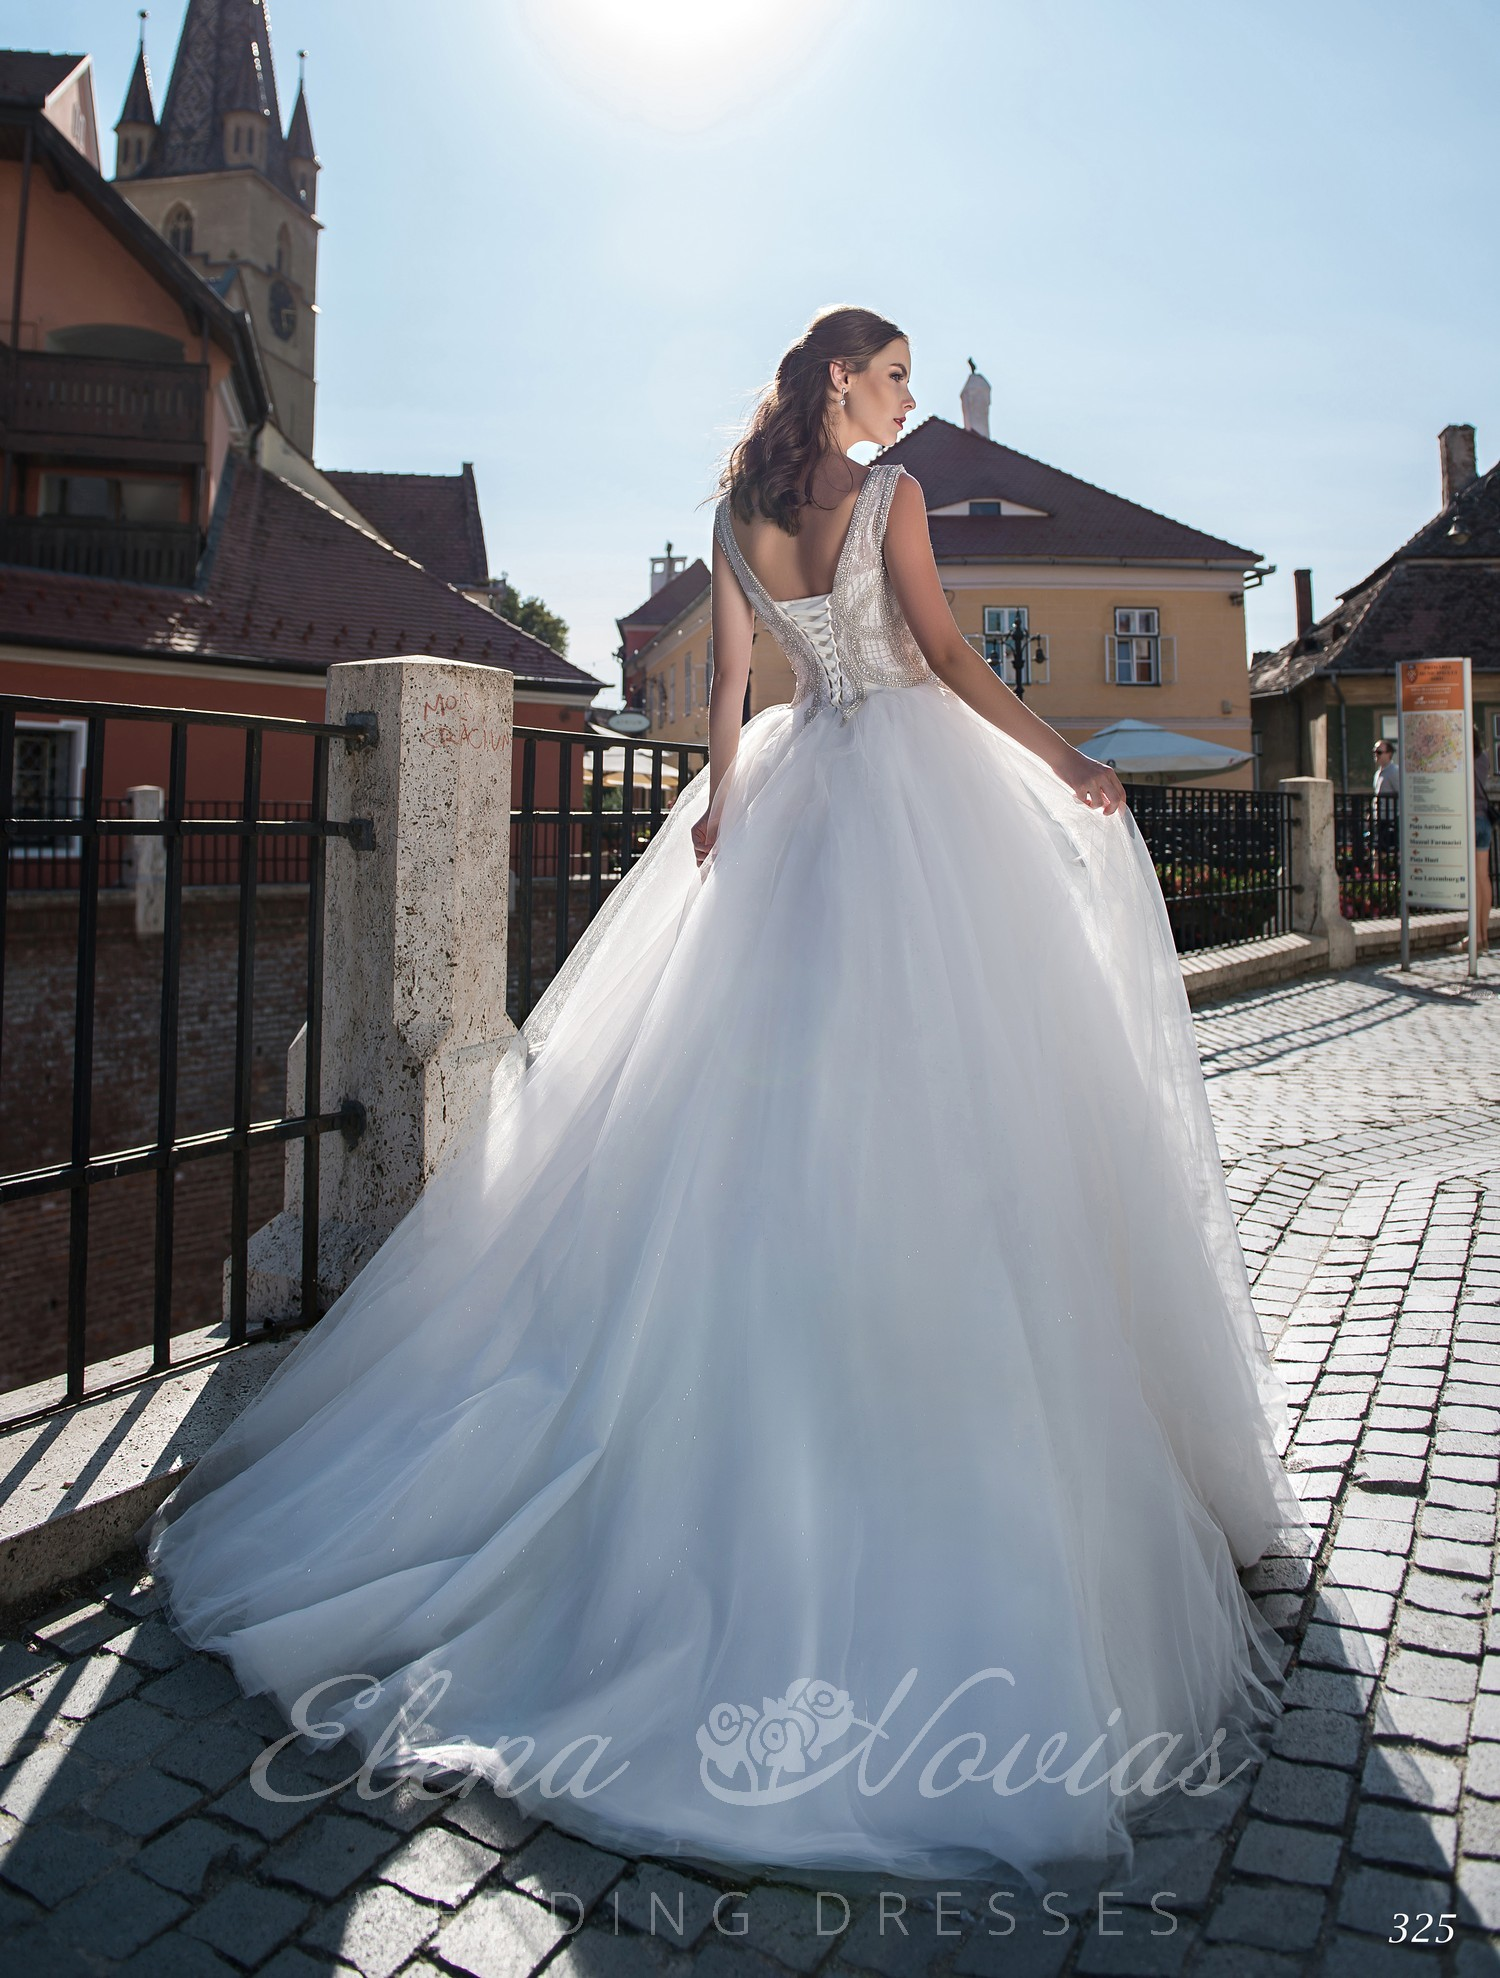 Wedding dress wholesale 325